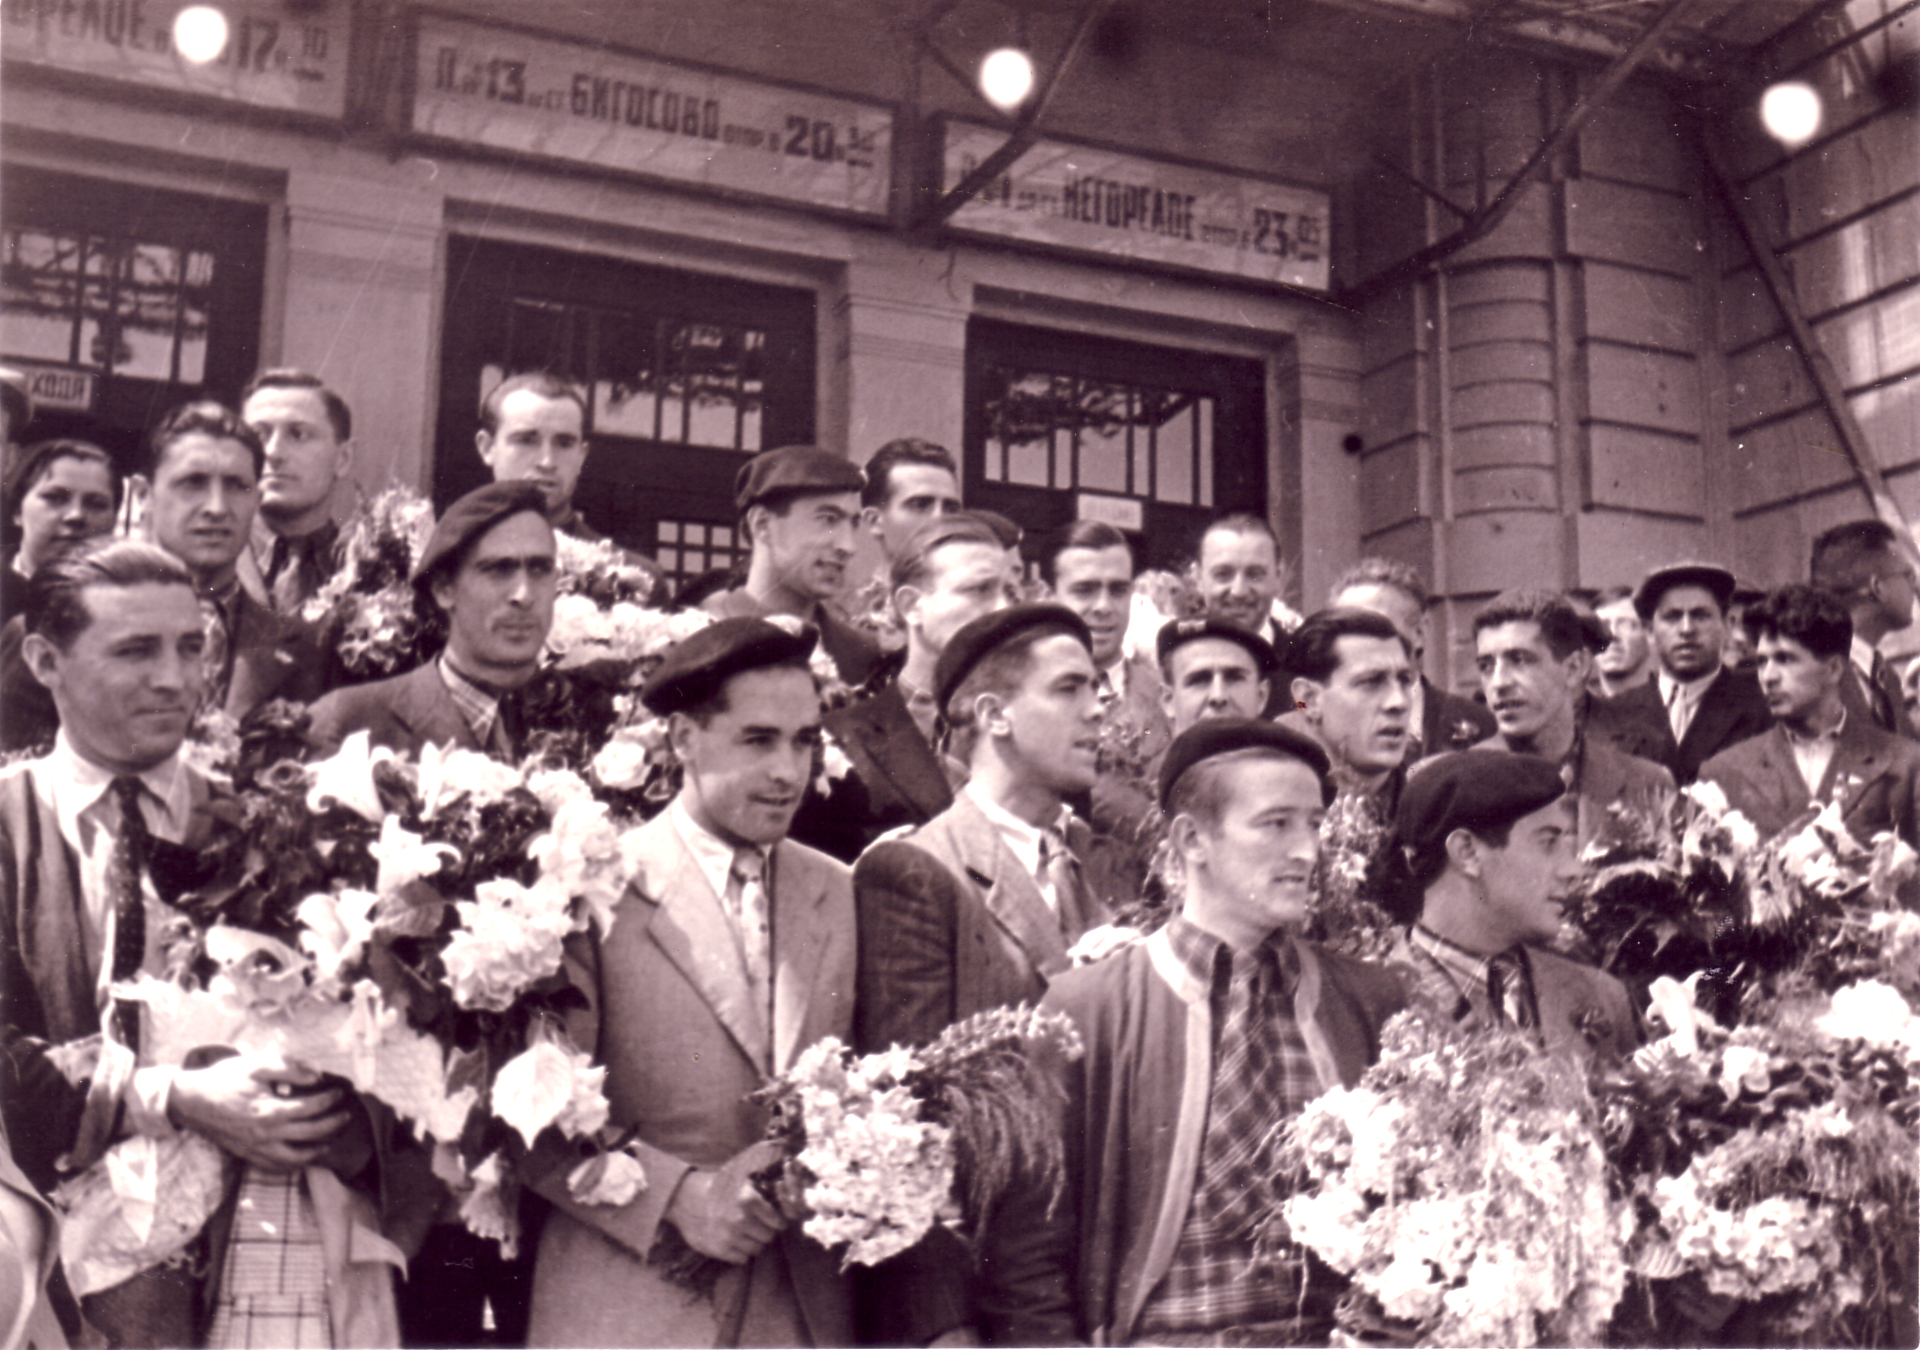 Welcoming of the team in Marseille. May 1937